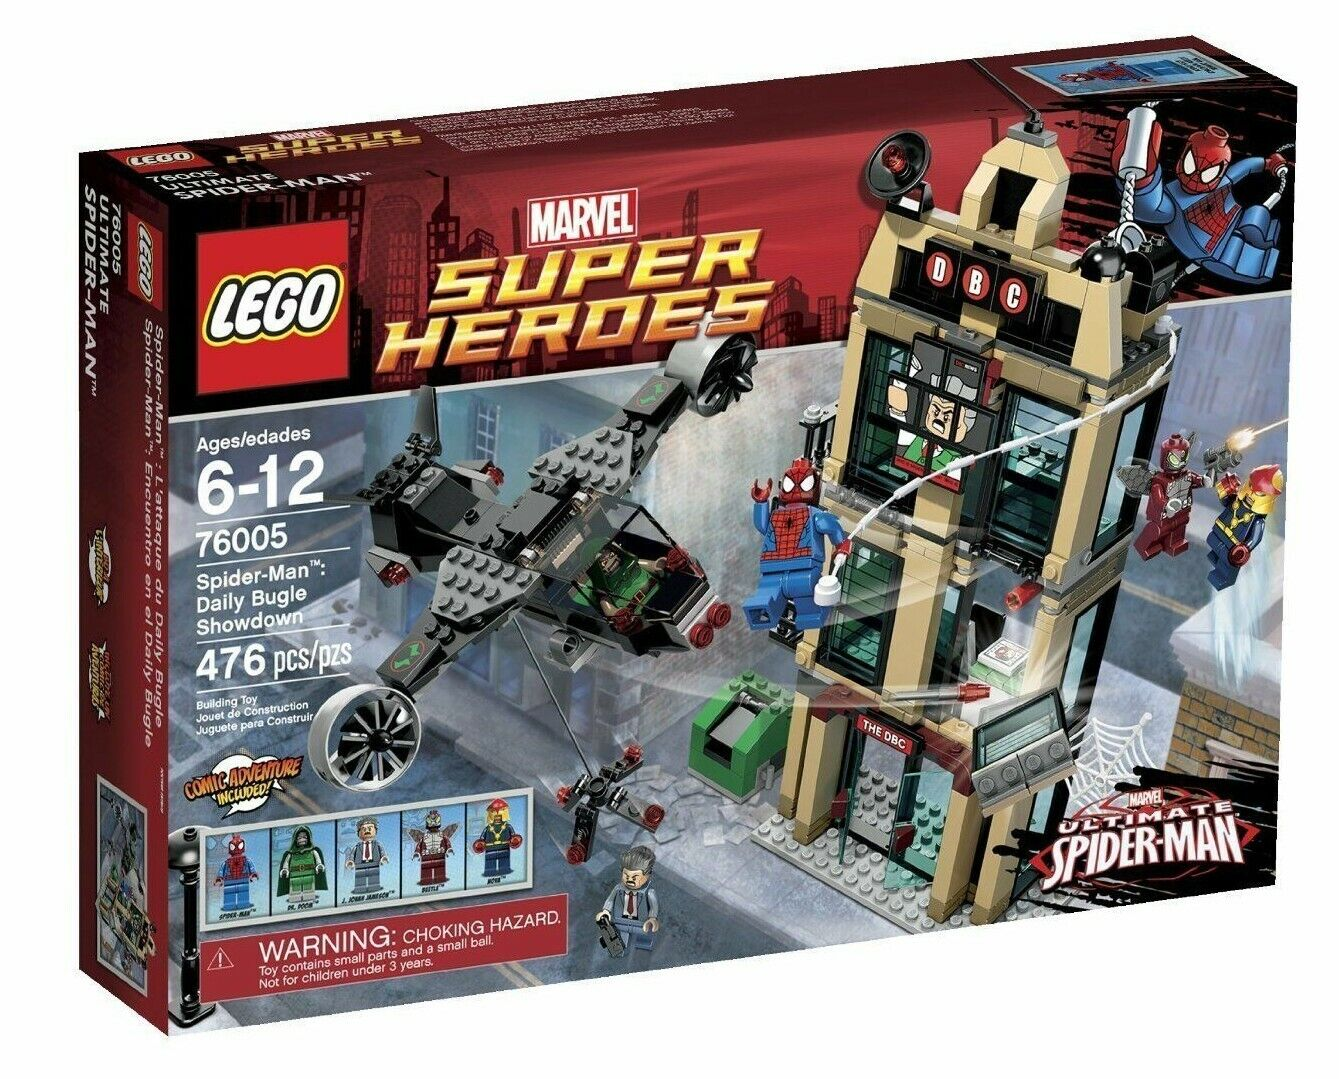 76005 SPIDER-MAN DAILY BUGLE SHOWDOWN lego NEW marvel super heroes IN HAND